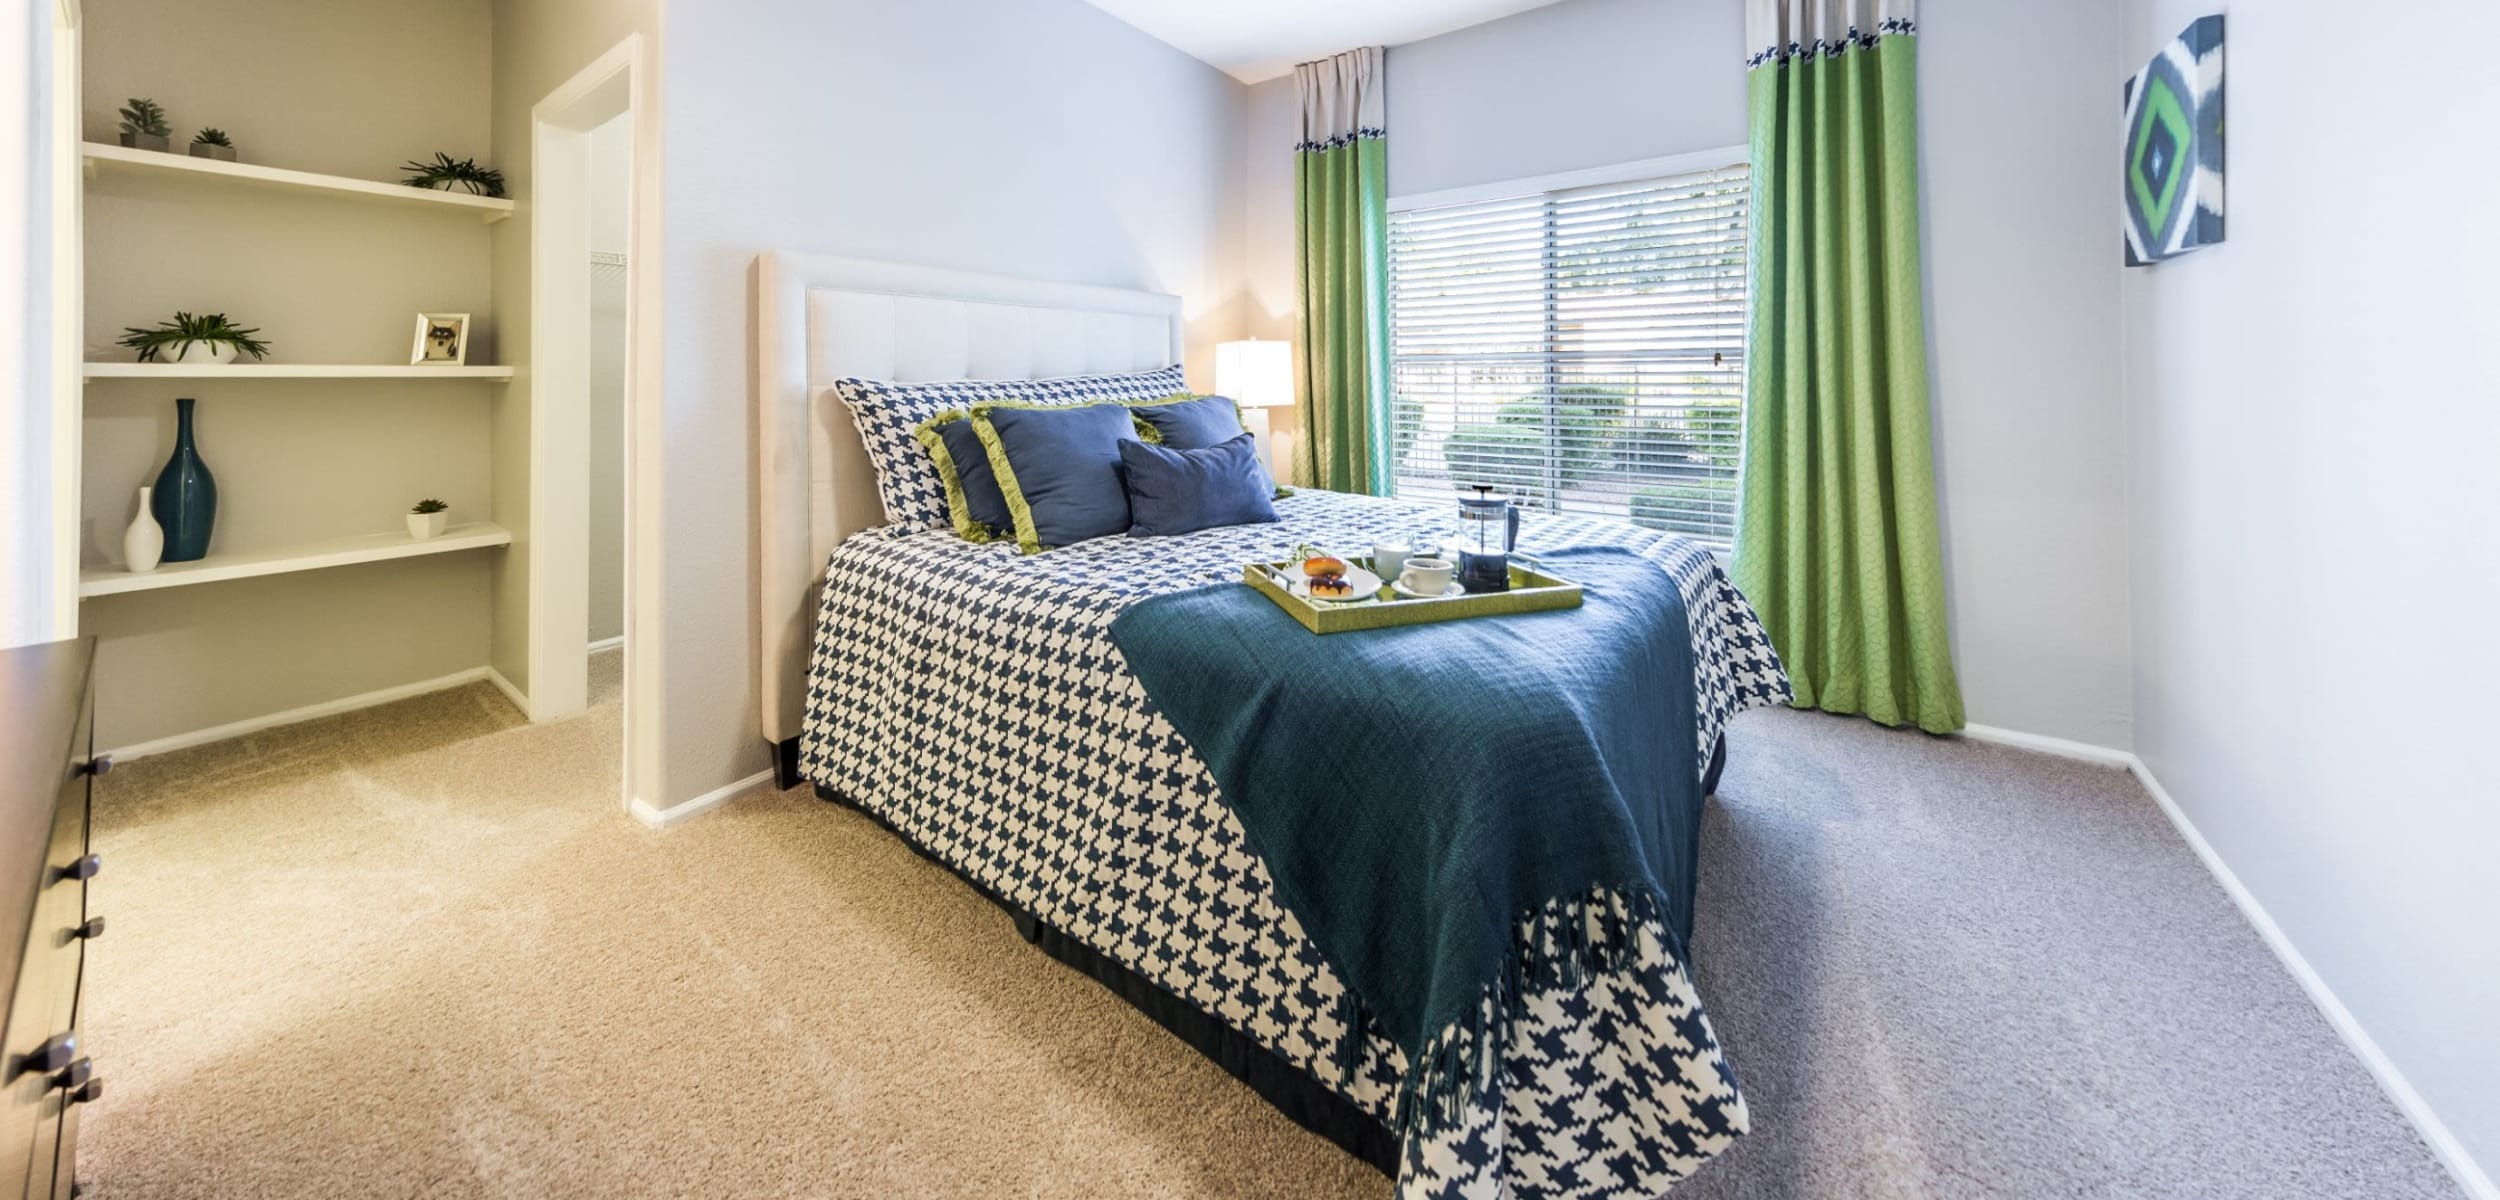 Bedroom with a large window at Marquis at Arrowhead in Peoria, Arizona